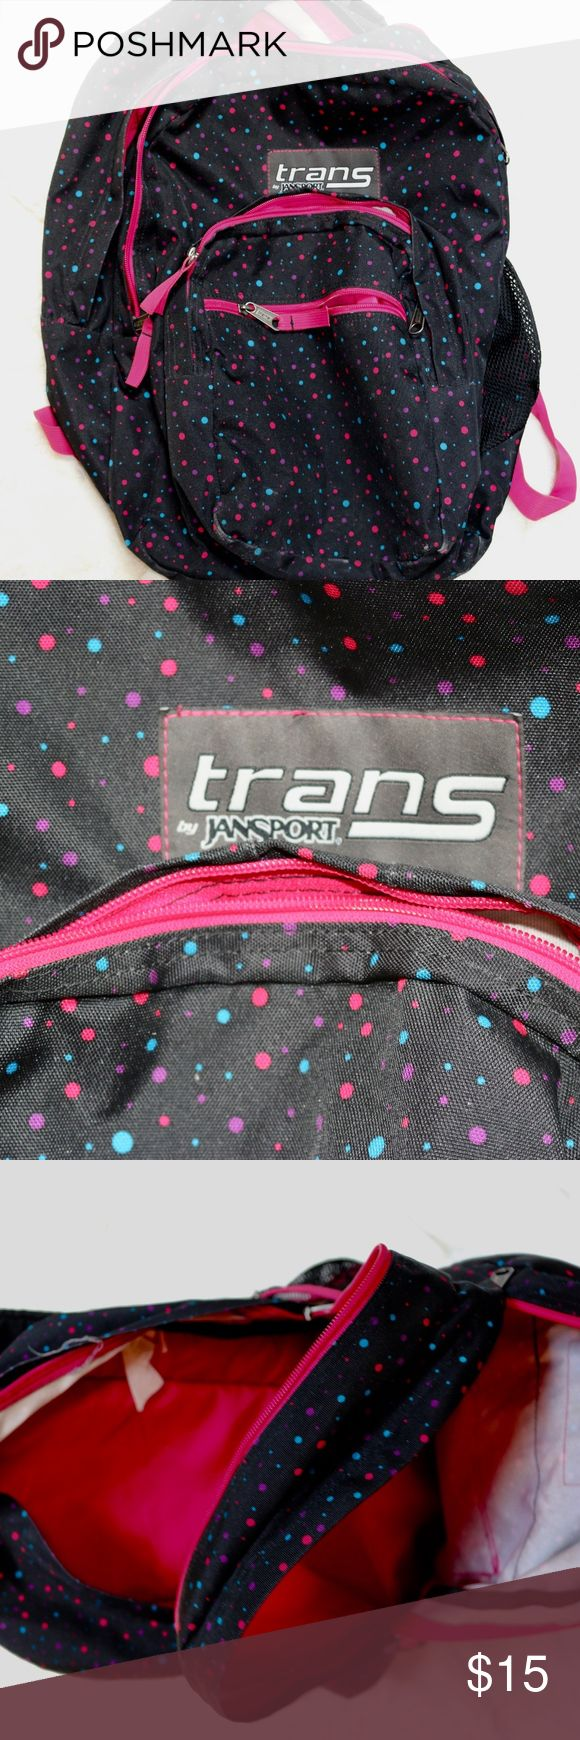 Trans Jansport Backpack, Black w/ Colored Pattern Black Trans Jansport backpack with pink, purple, and blue polka-dot pattern. Has two mesh water bottle holders, one on each side (one has slight damage, see image 4). Hot pink interior and adjustable straps. GREAT for back to school or for casual use! Pre-loved, but still in great condition! Jansport Bags Backpacks